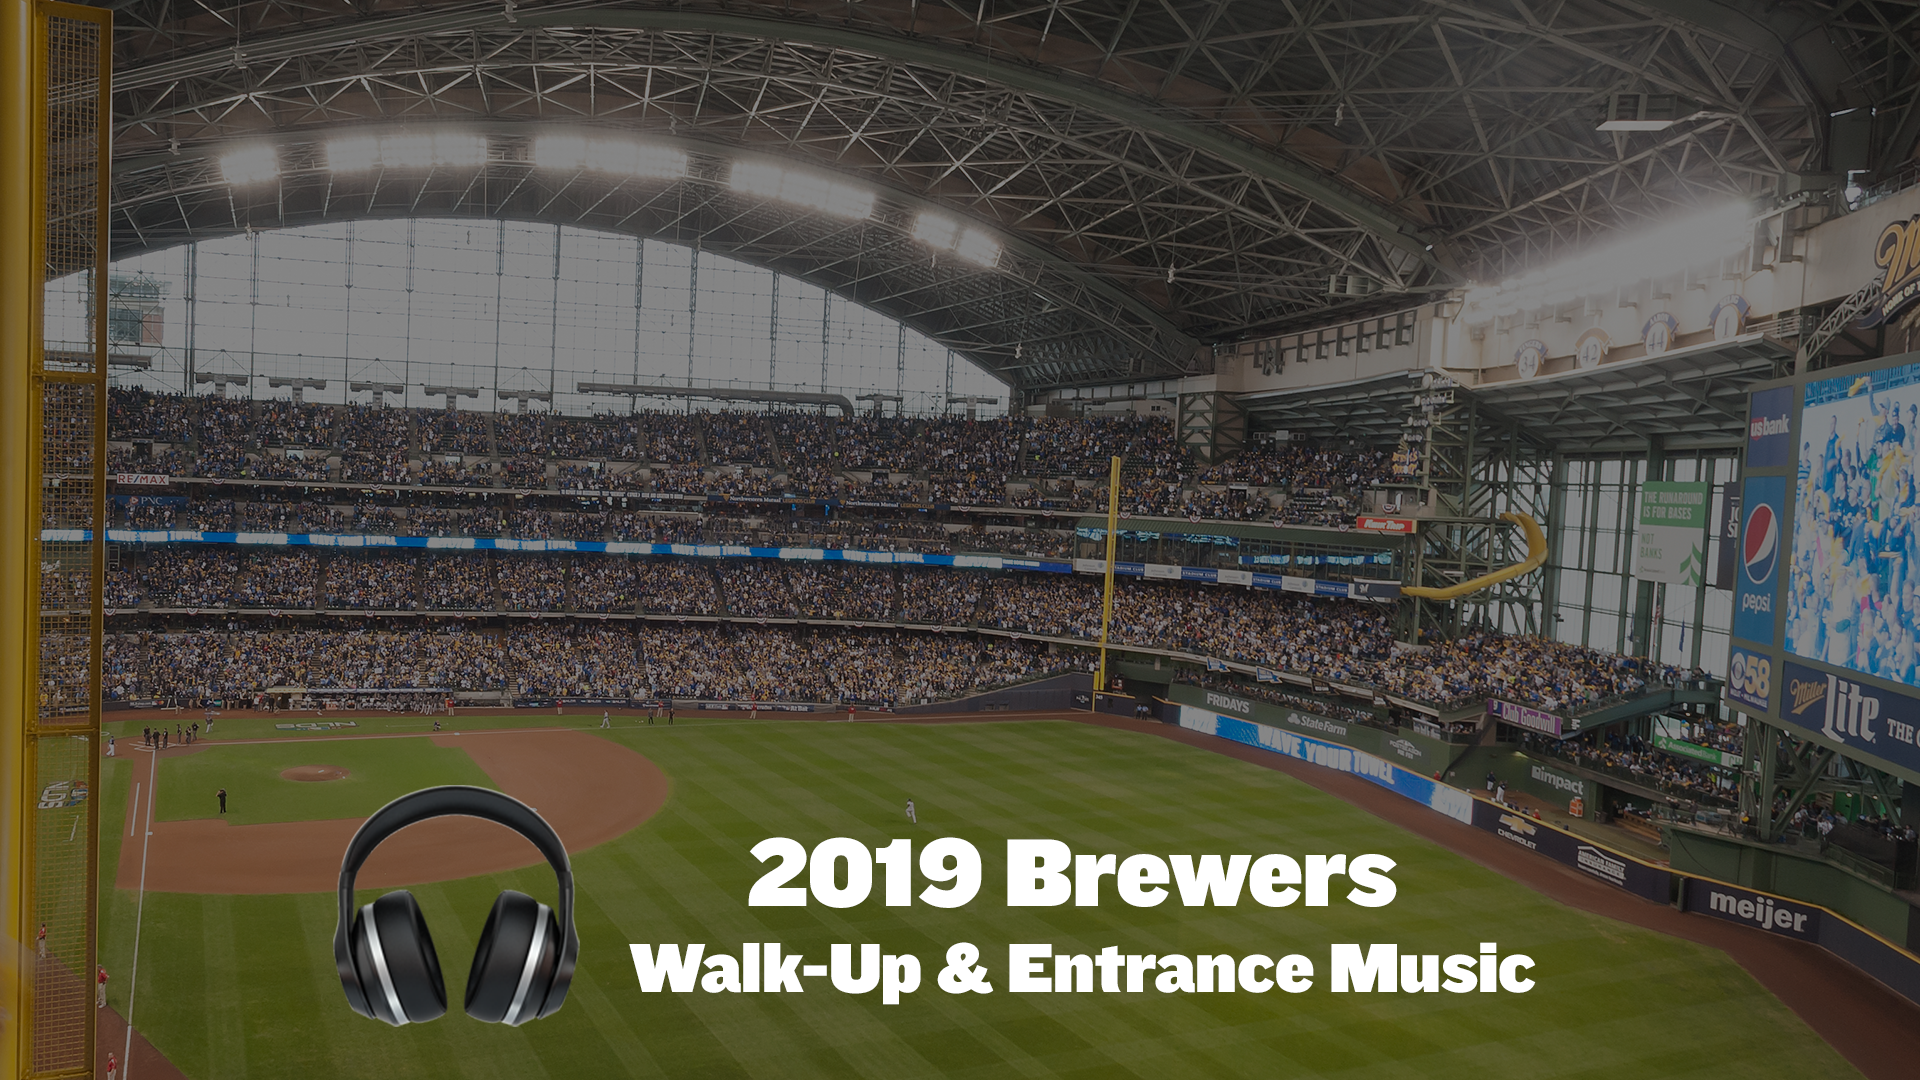 2019 Brewers At Bat & Walk-Up Music - Cait Covers the Bases